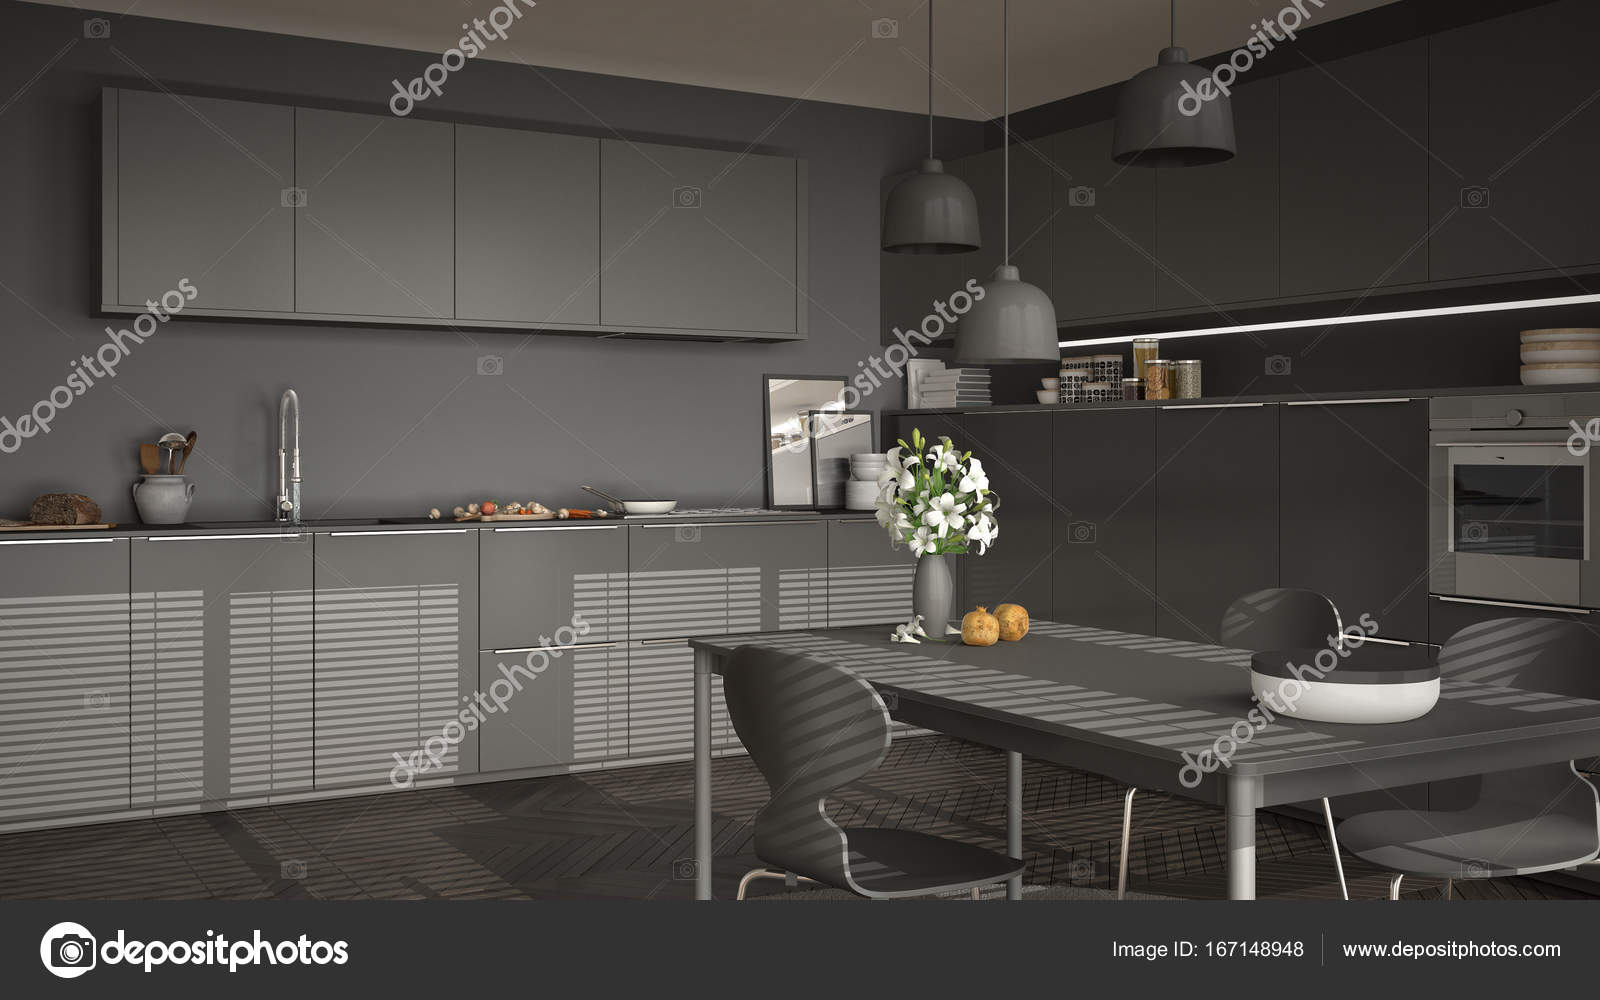 modern kitchen tables pull down cabinets for the disabled 现代厨房的桌子和椅子 大窗户和herringbon 图库照片 c archiviz 167148948